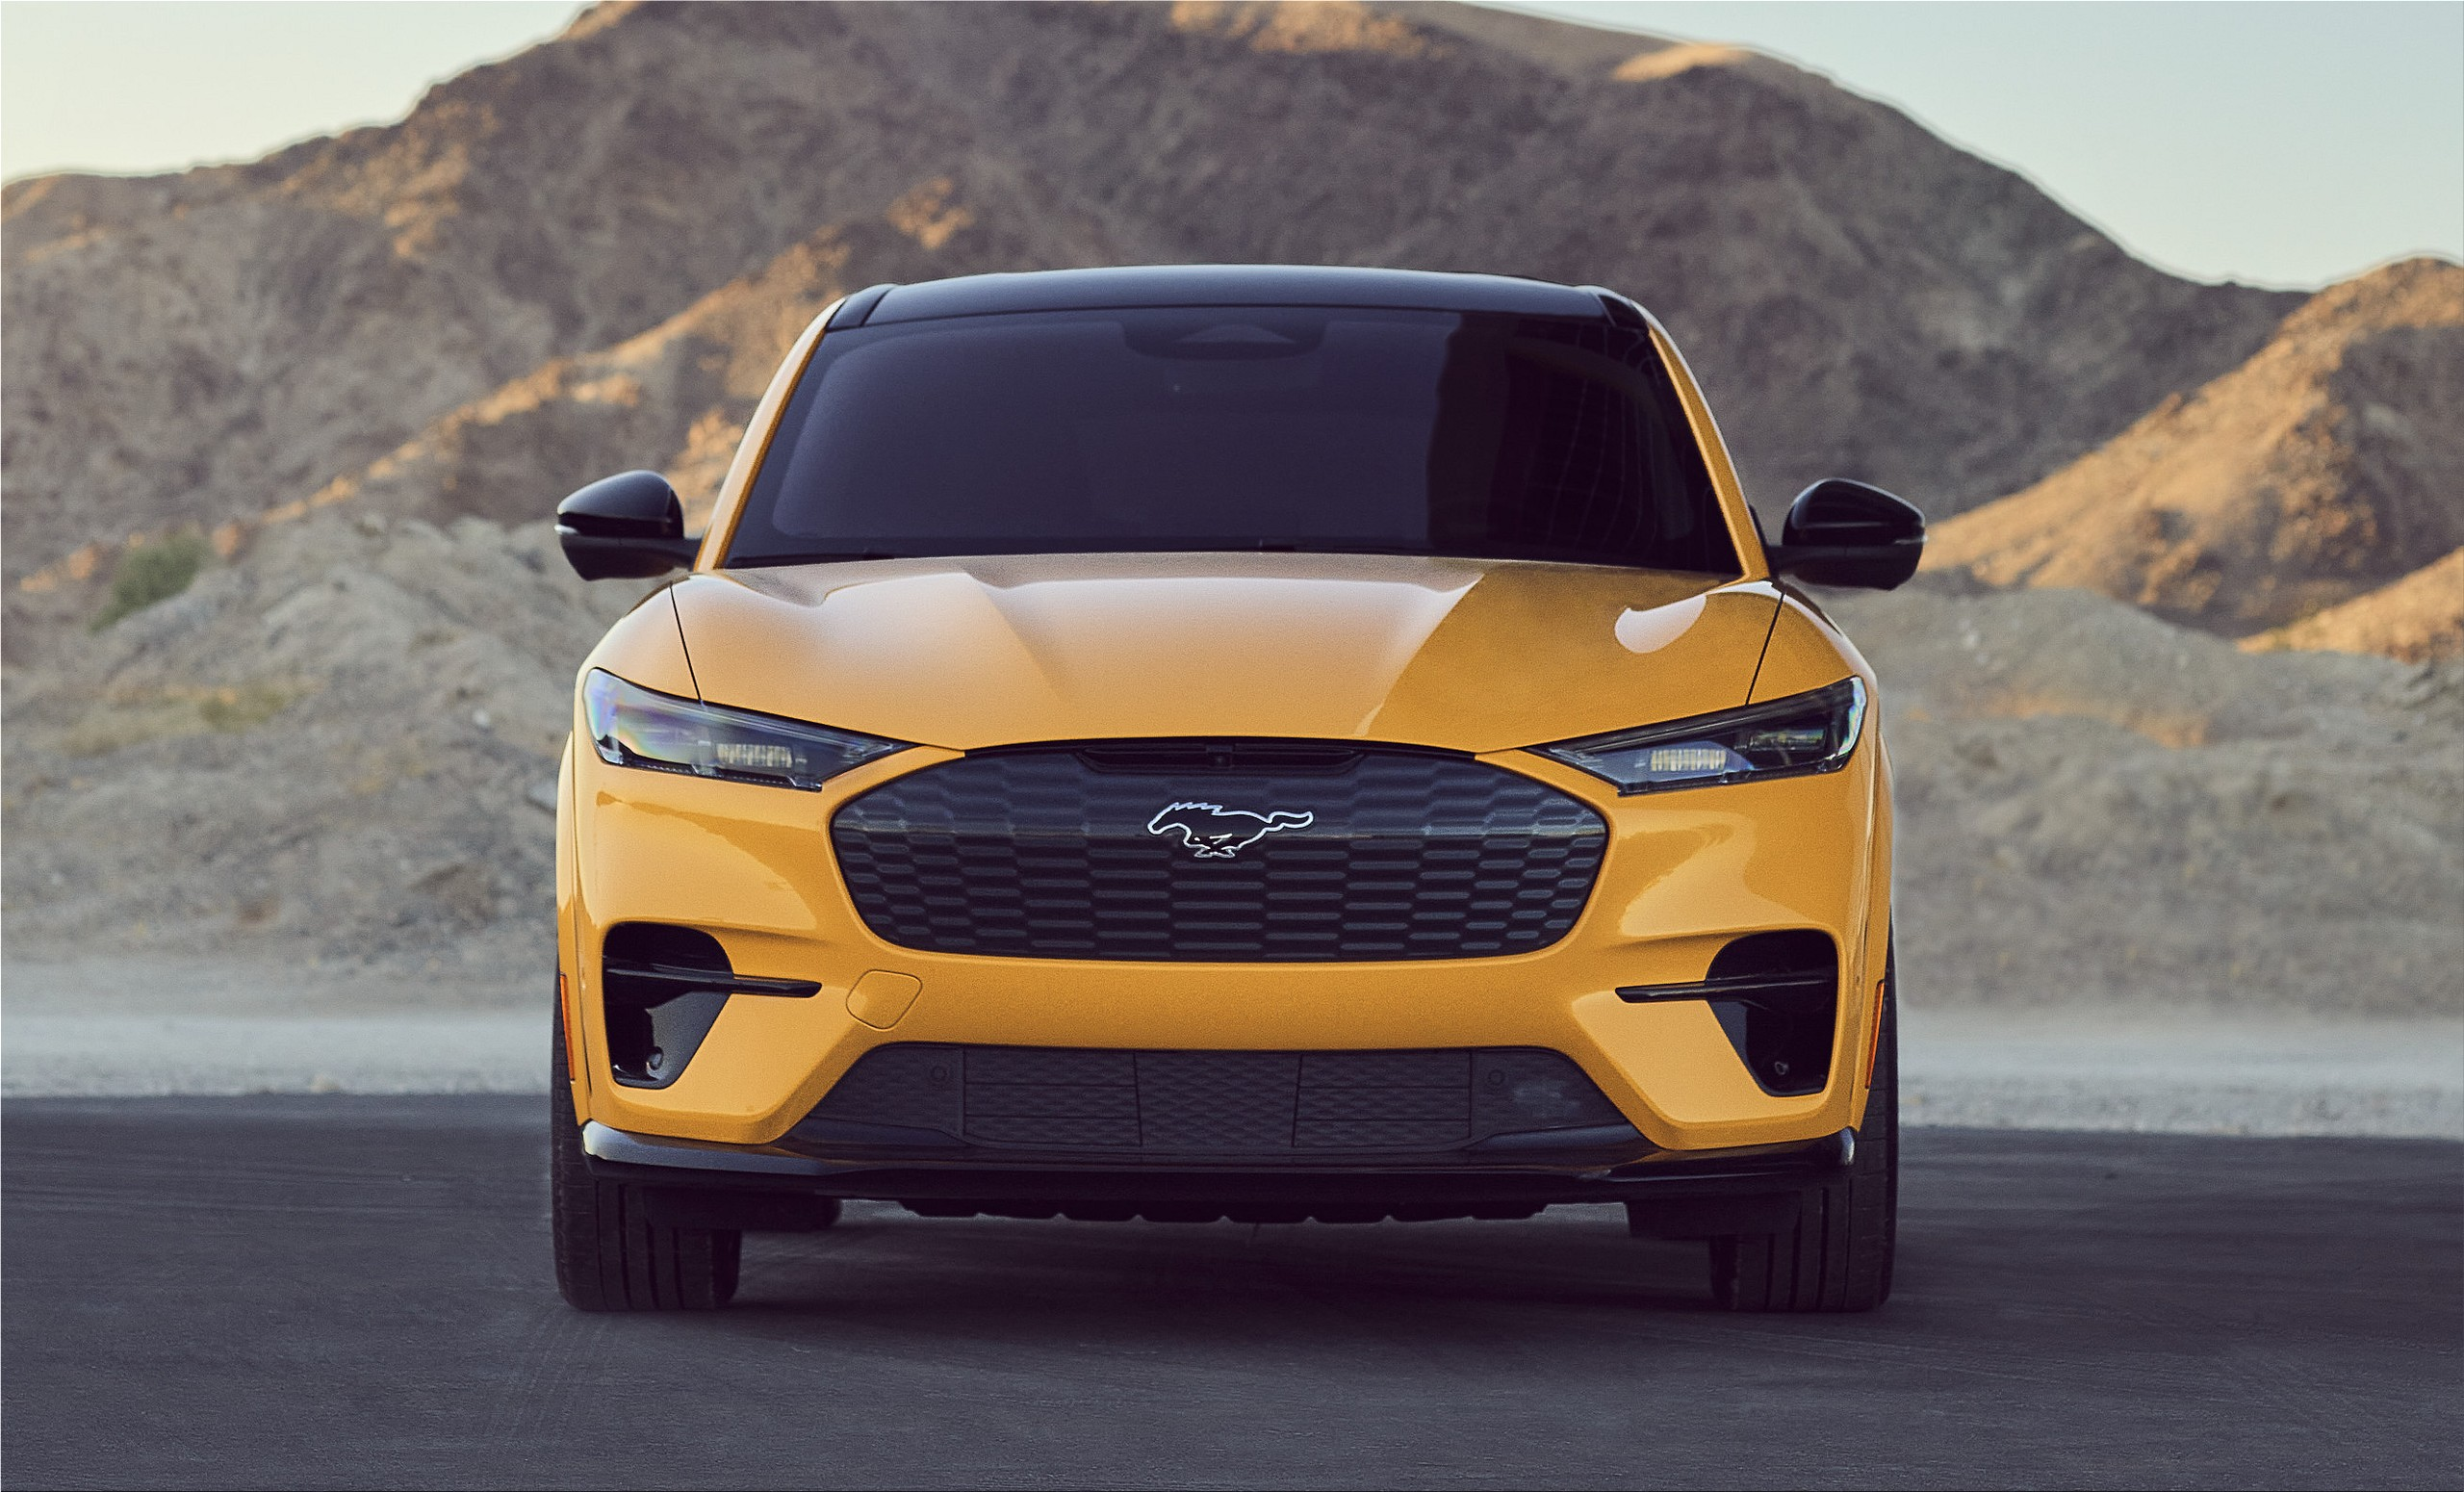 2021 Ford Mustang Electric Car